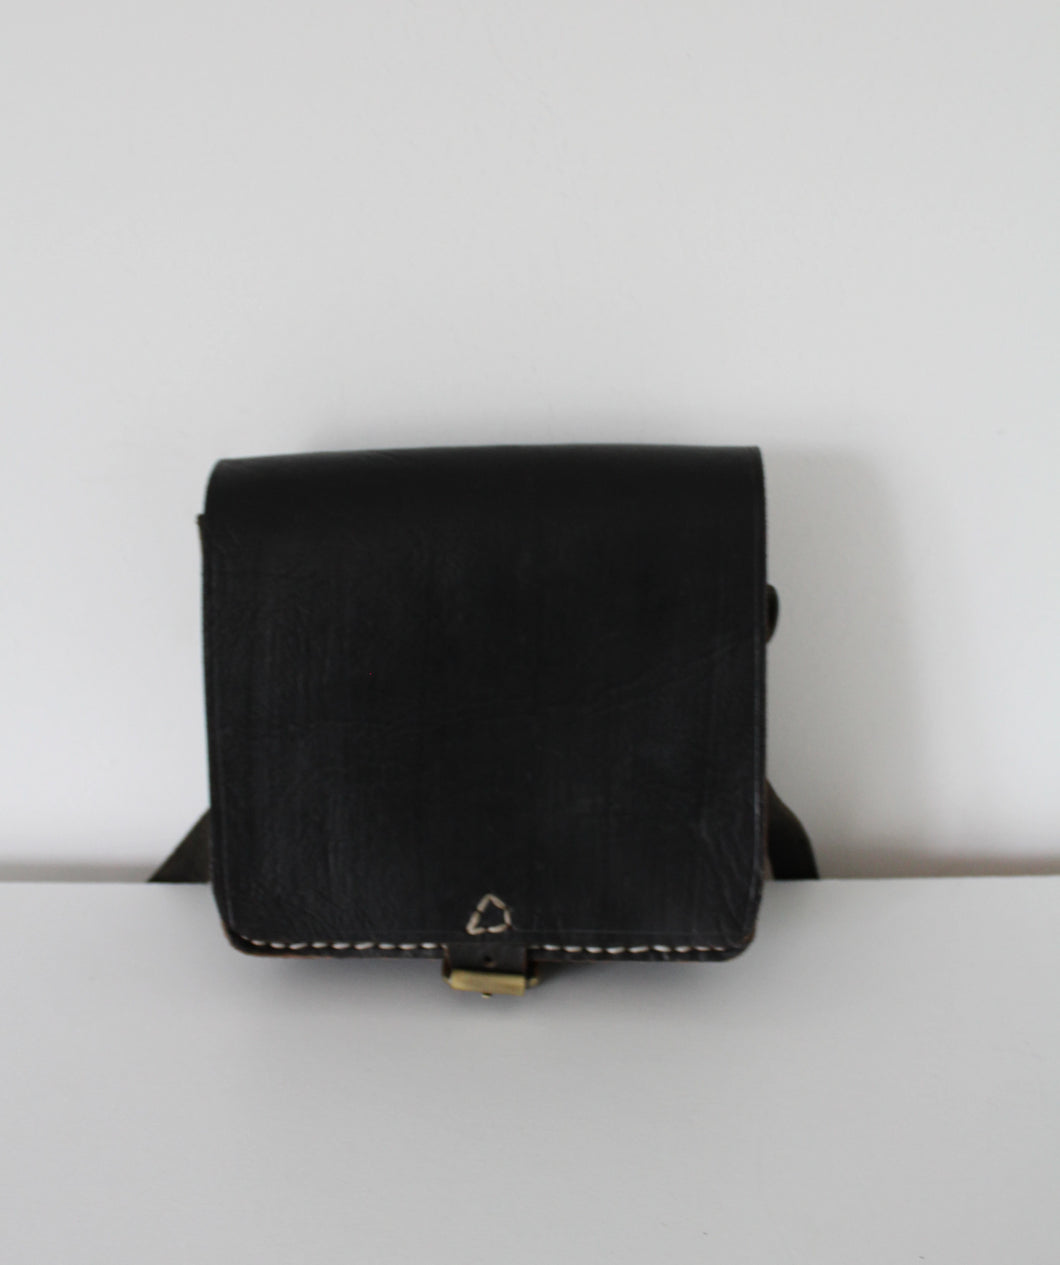 Boho Square Saddle Bag -  Black - Bohemian Lifestyle